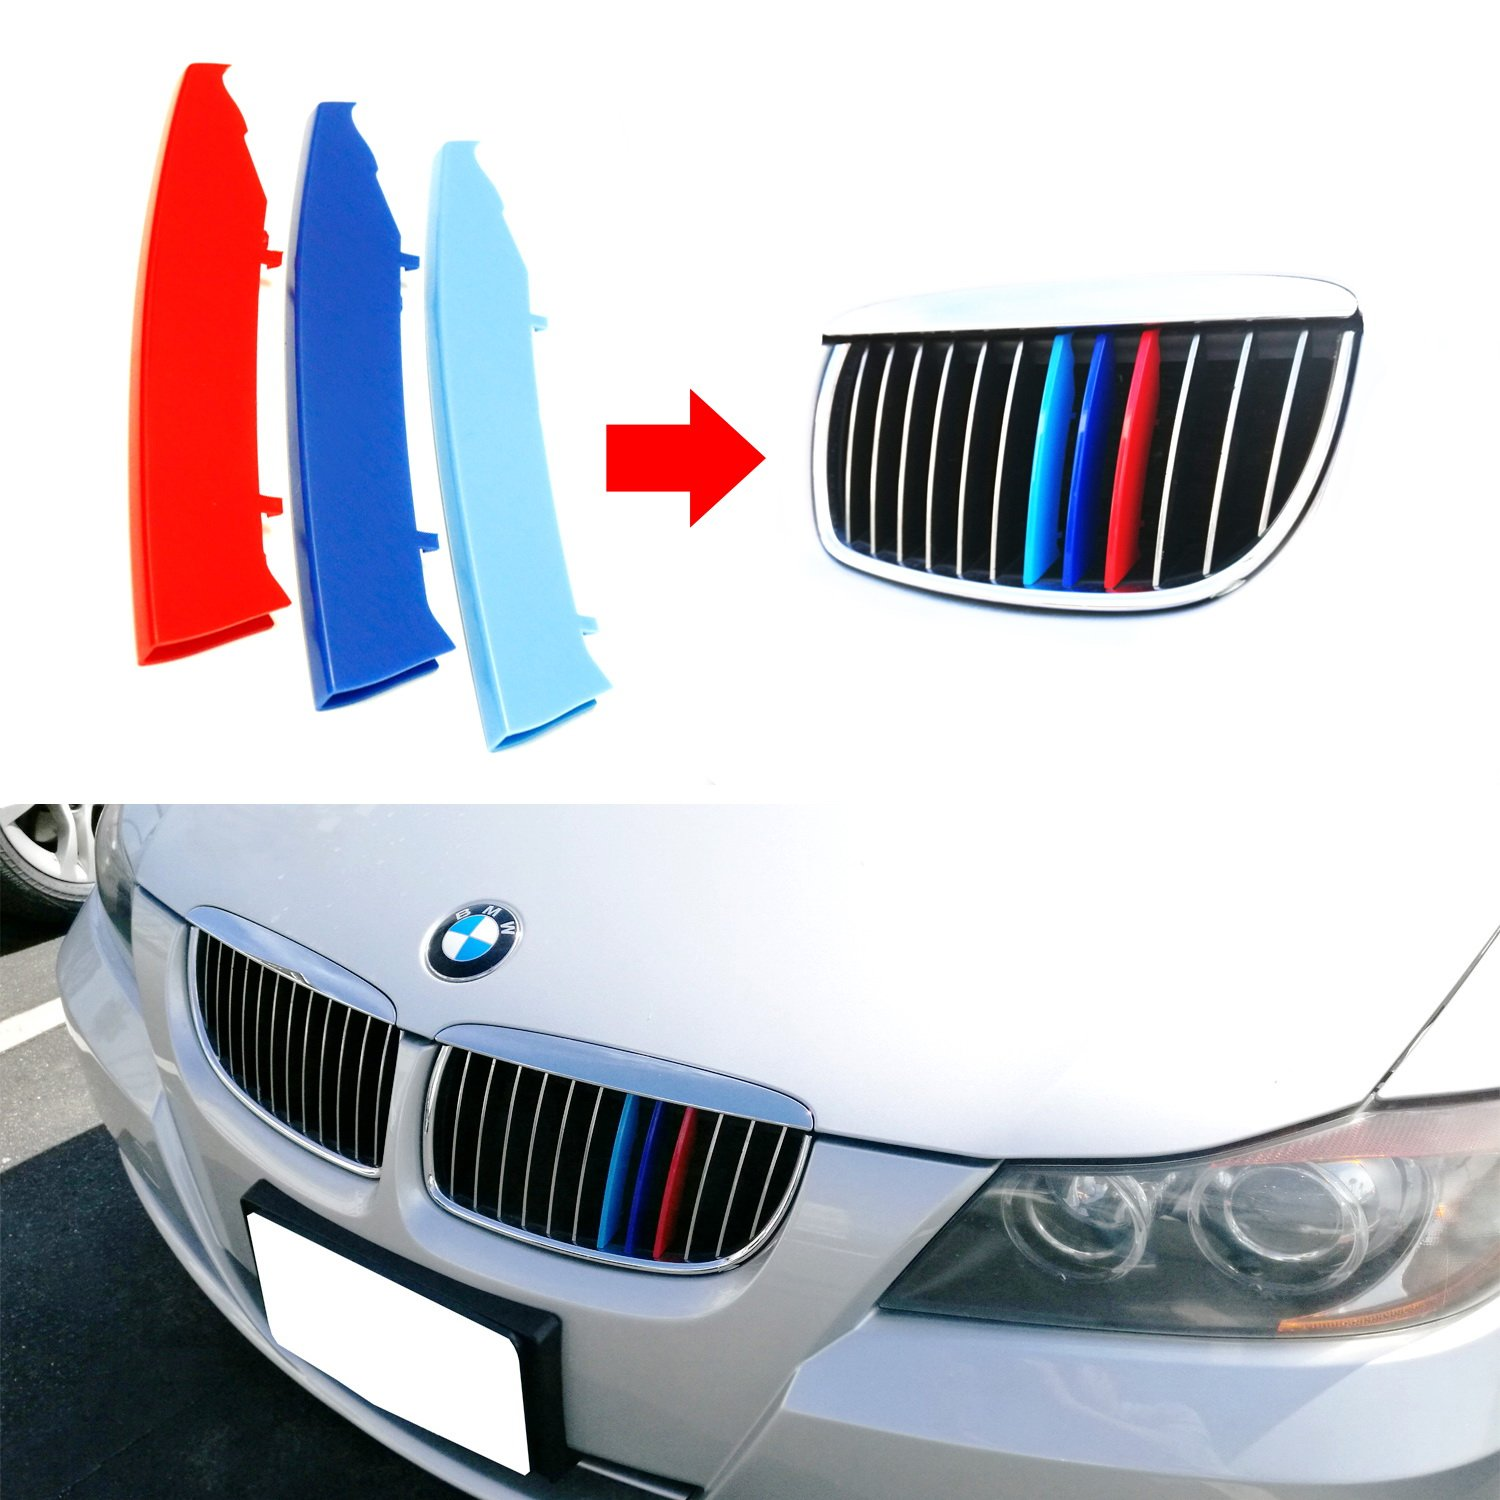 iJDMTOY Exact Fit ///M-Colored Grille Insert Trims For 2006-2008 BMW E90/E91 Pre-LCI 3 Series w/12-Beam Grill ONLY